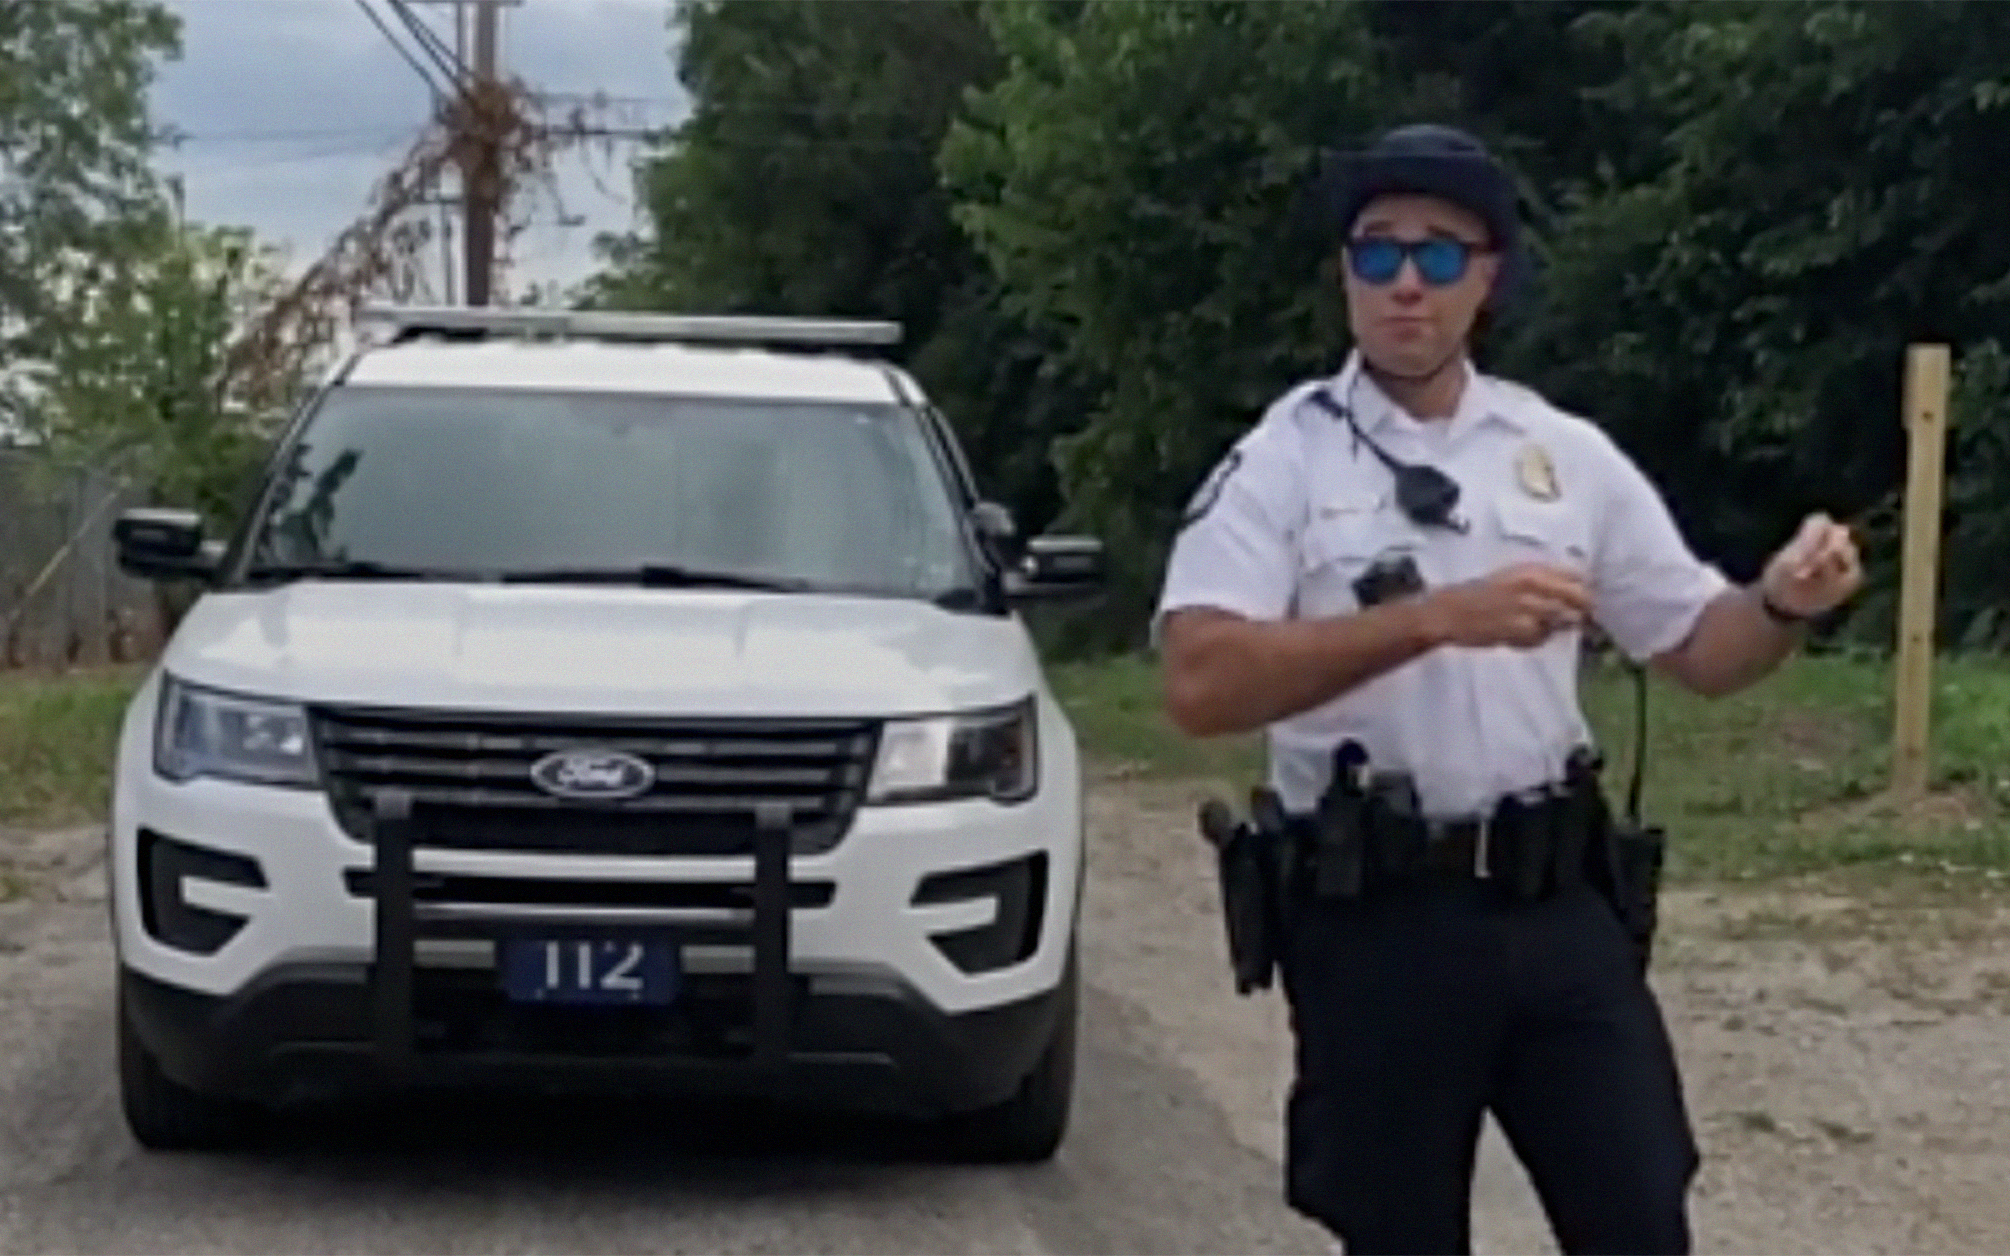 A photo of Officer Anthony Johnson (@ohnoitsdapopo) on TikTok. He is dancing in front of his cop car while in uniform.